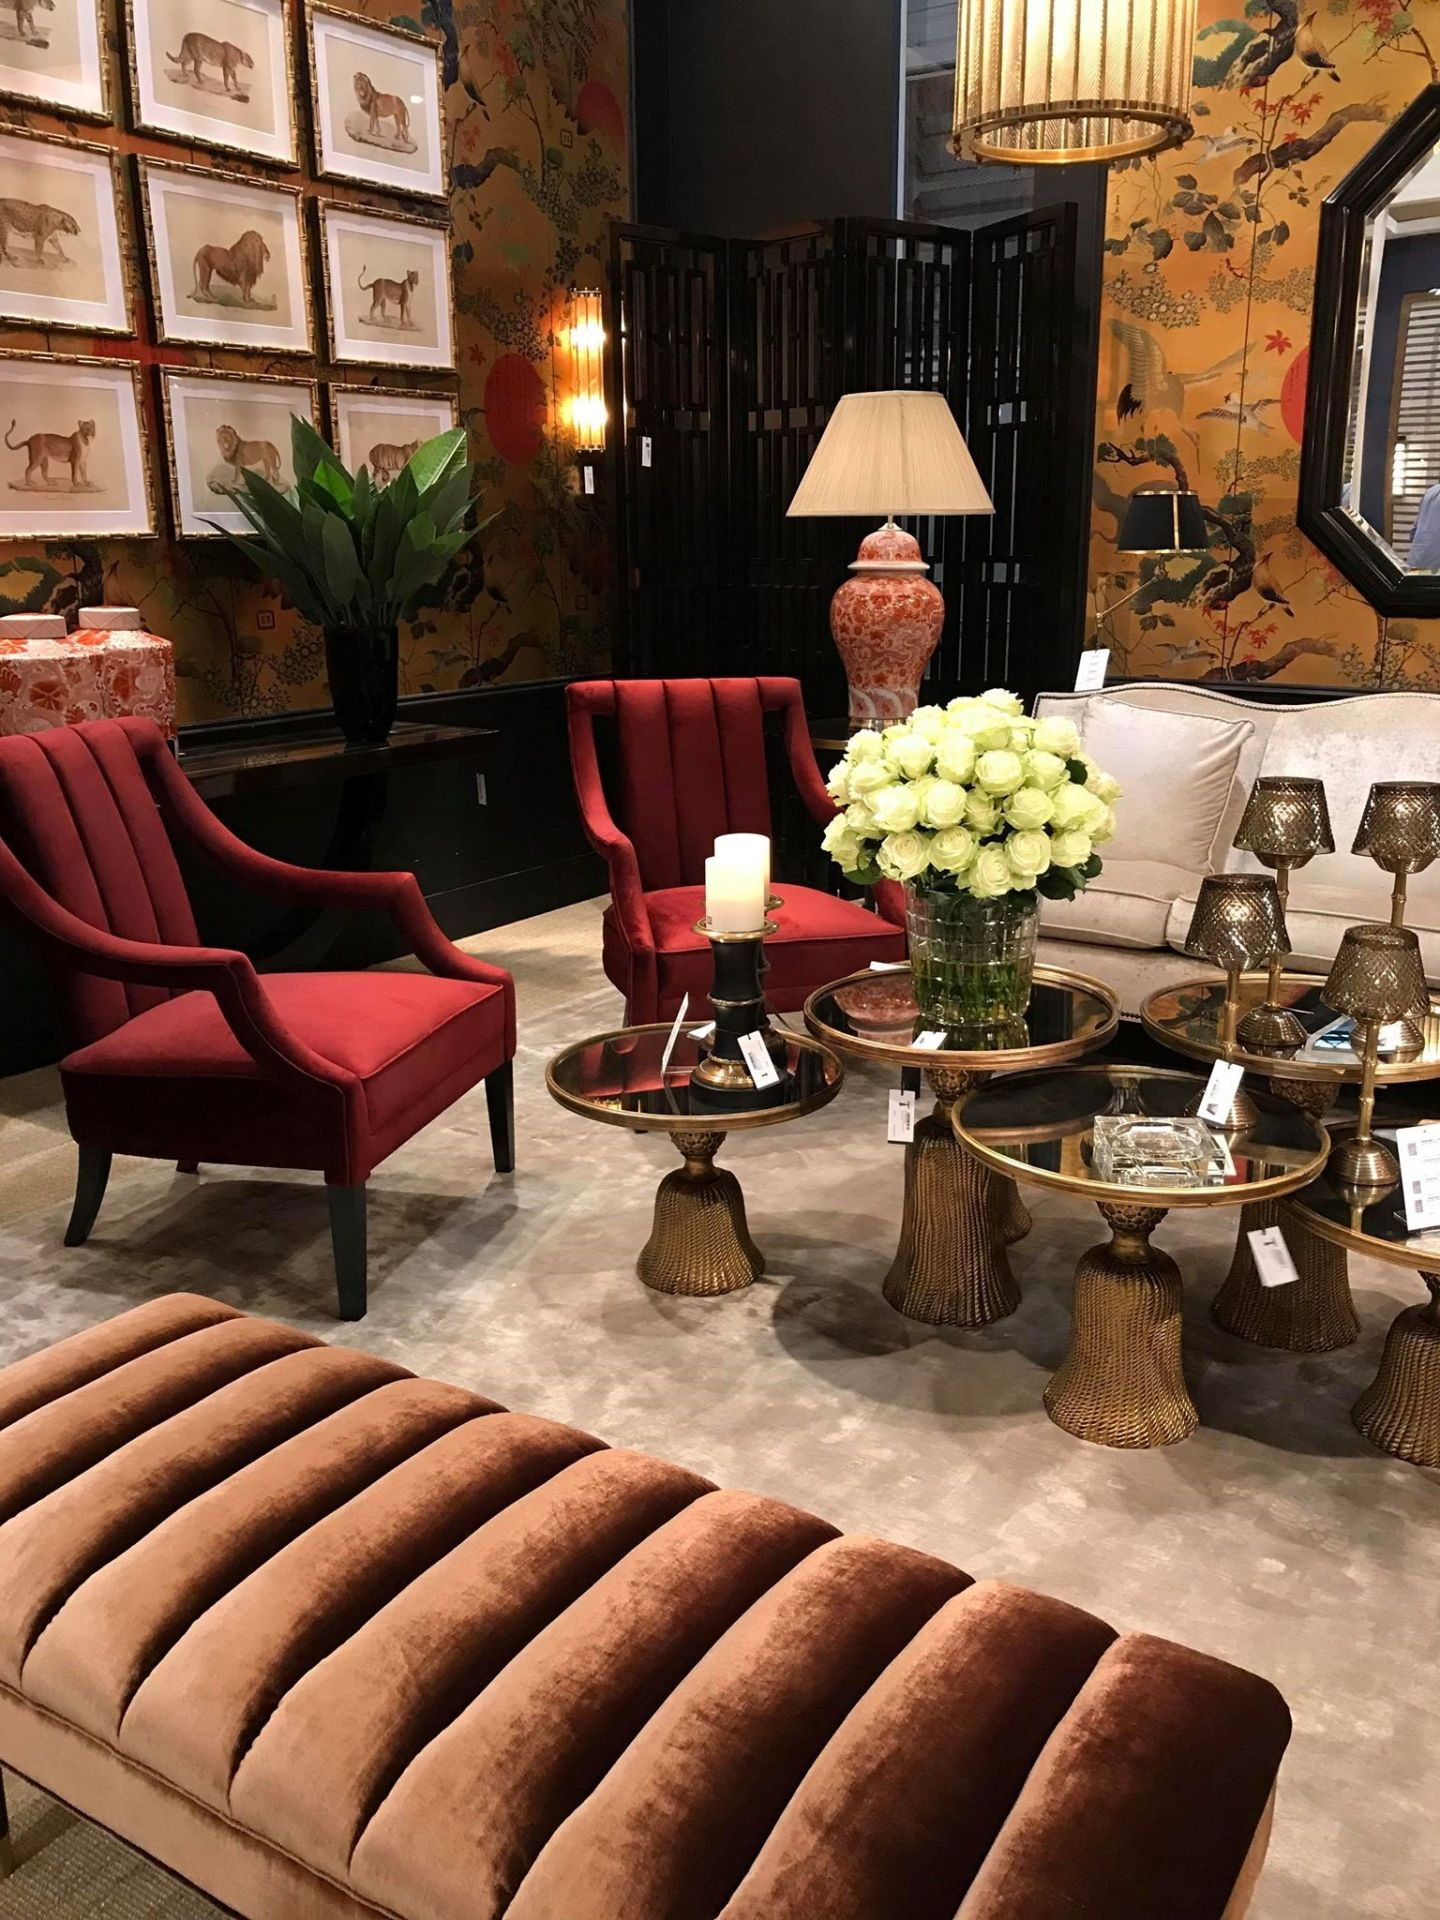 IDH Maison & Objet Interior Design Trend Report  Part 2: Upholstery Silhouettes and Furniture Detailing